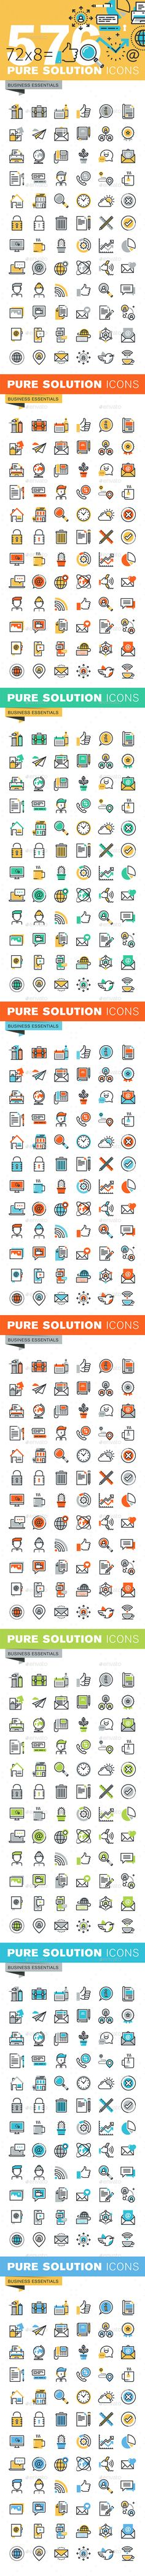 Set of Thin Line Flat Design Icons of Business Essentials. Download here: http://graphicriver.net/item/set-of-thin-line-flat-design-icons-of-business-essentials/14786697?ref=ksioks